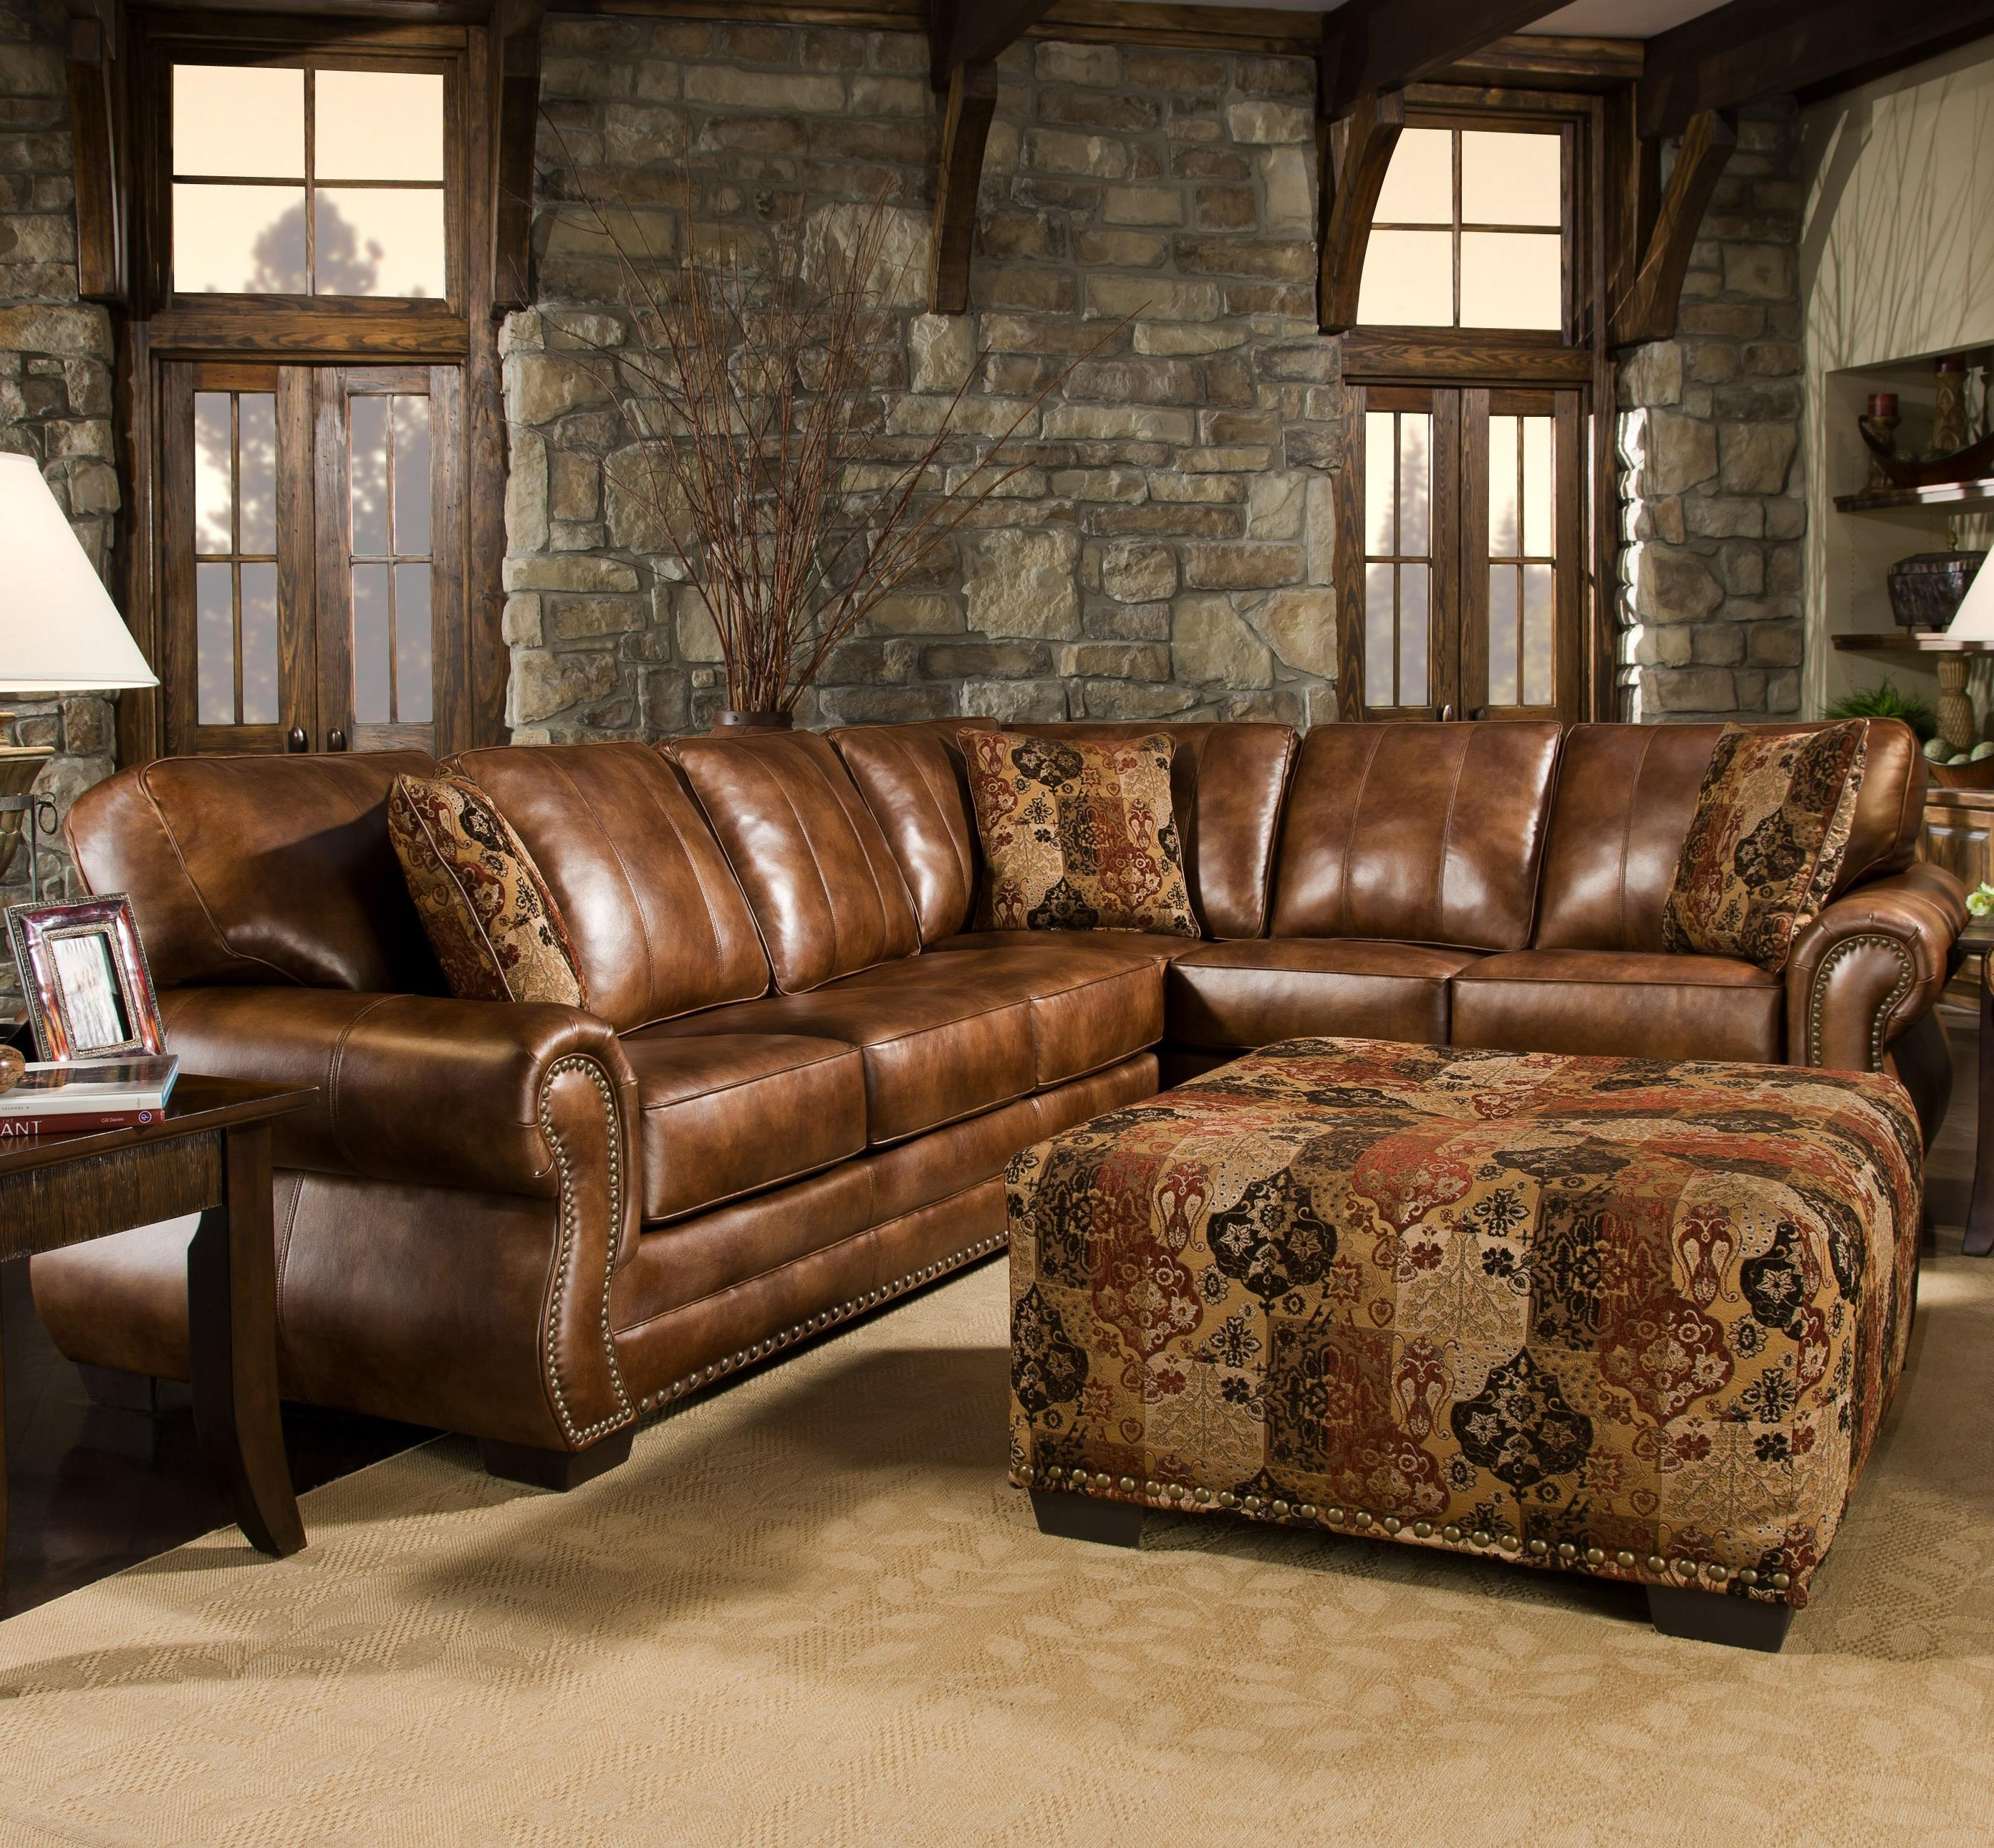 Saddle Sectional With Studs, Two Piece Sectional, Rustic, Western With Ivan Smith Sectional Sofas (View 9 of 10)